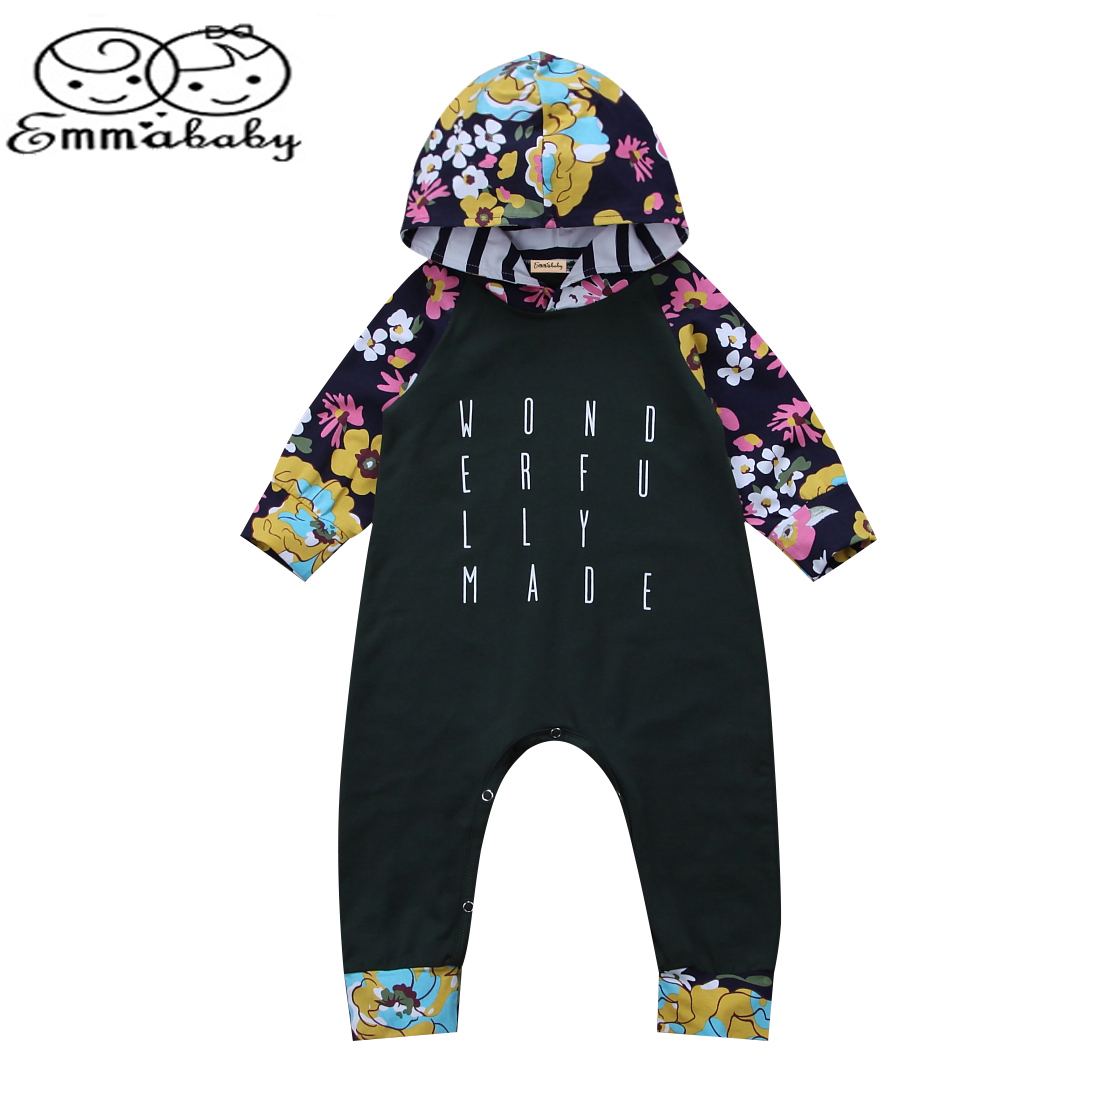 Emmababy Autumn&Winter Kids Clothes Infant Baby Boy Girl Hooded Long Sleeve Romper Jumper Playsuit Outfits Clothes 0-24M